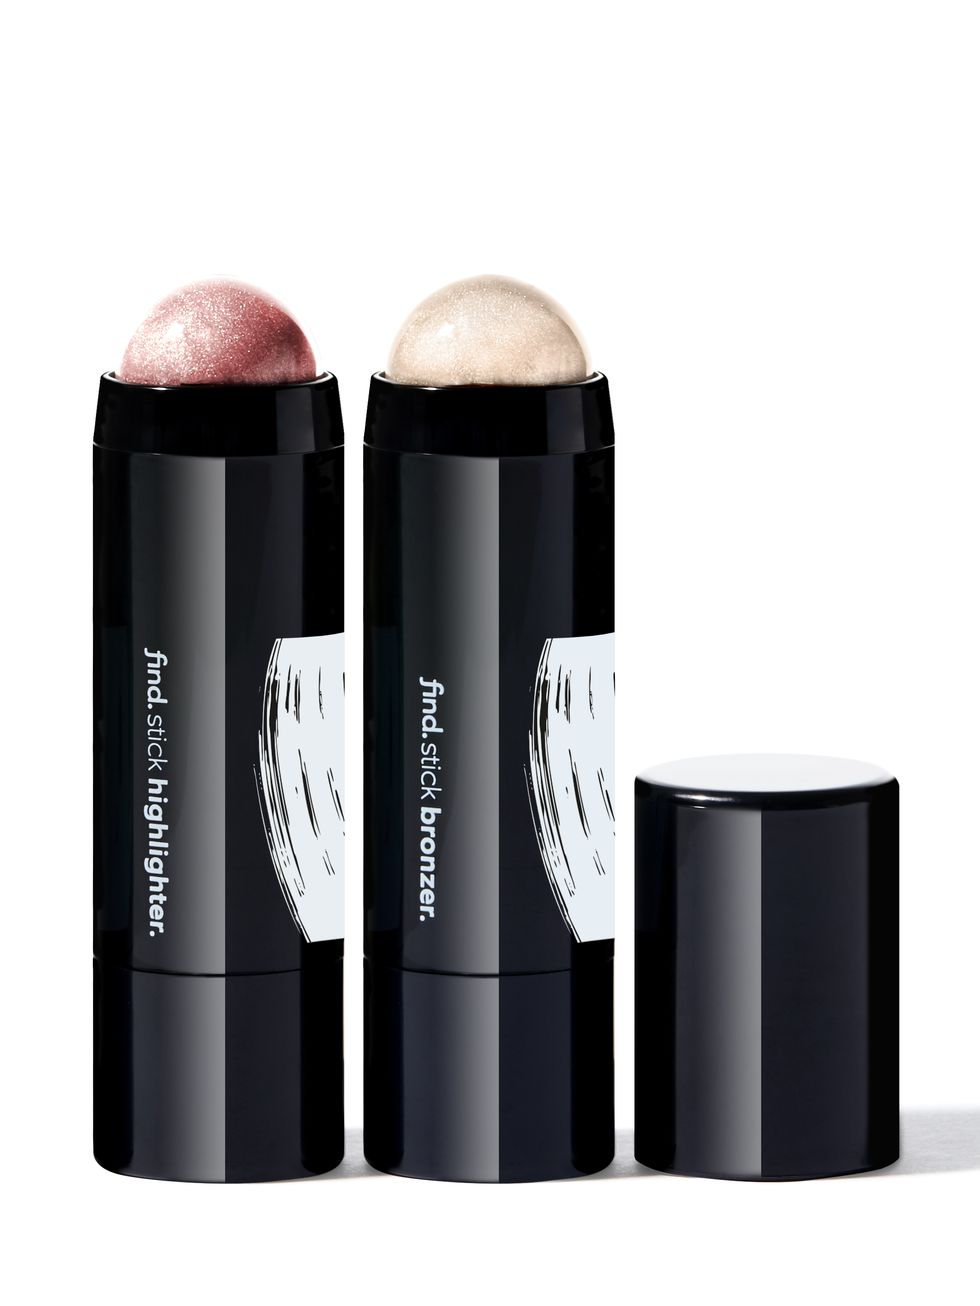 Pack 'Sunkissed radiance duo' compuesto por un bronceador y colorete